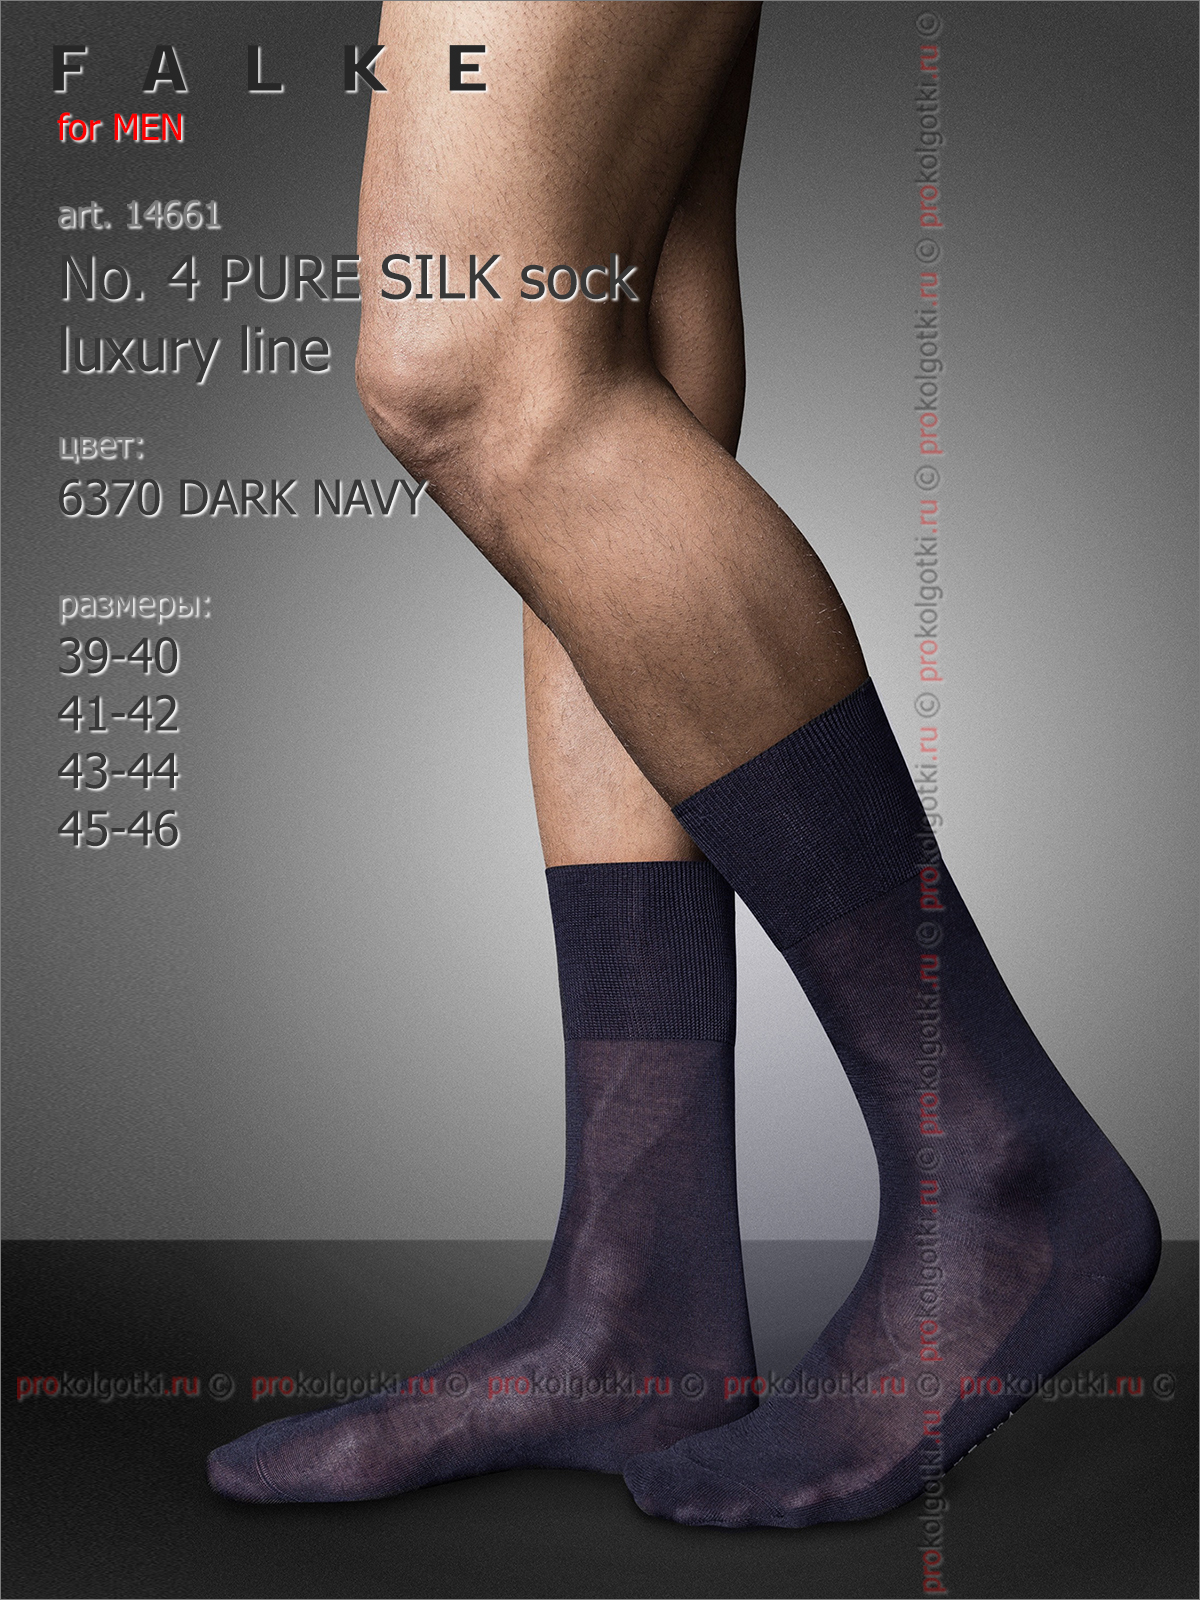 Носки Falke Art. 14661 No. 4 Pure Silk Sock - фото 3